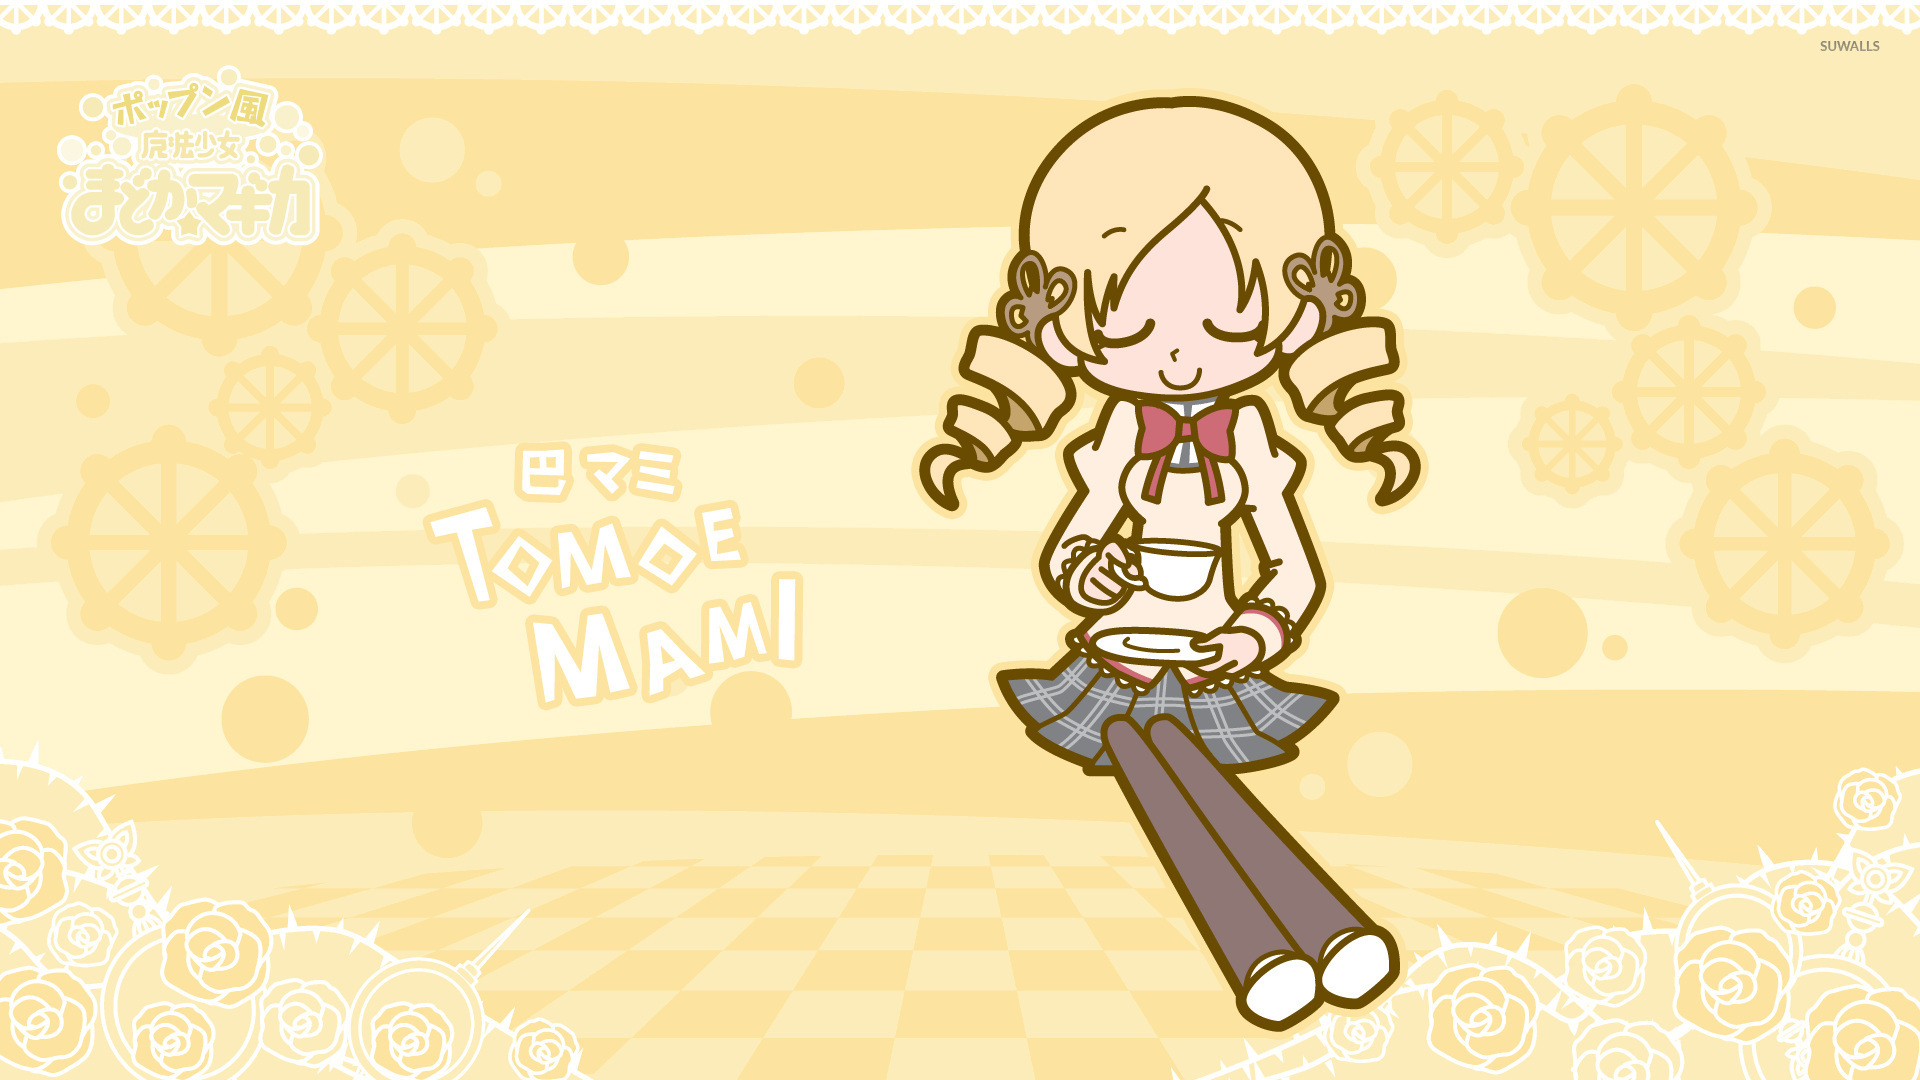 Mami Tomoe Having Tea Puella Magi Madoka Magica Wallpaper Anime Wallpapers 54474